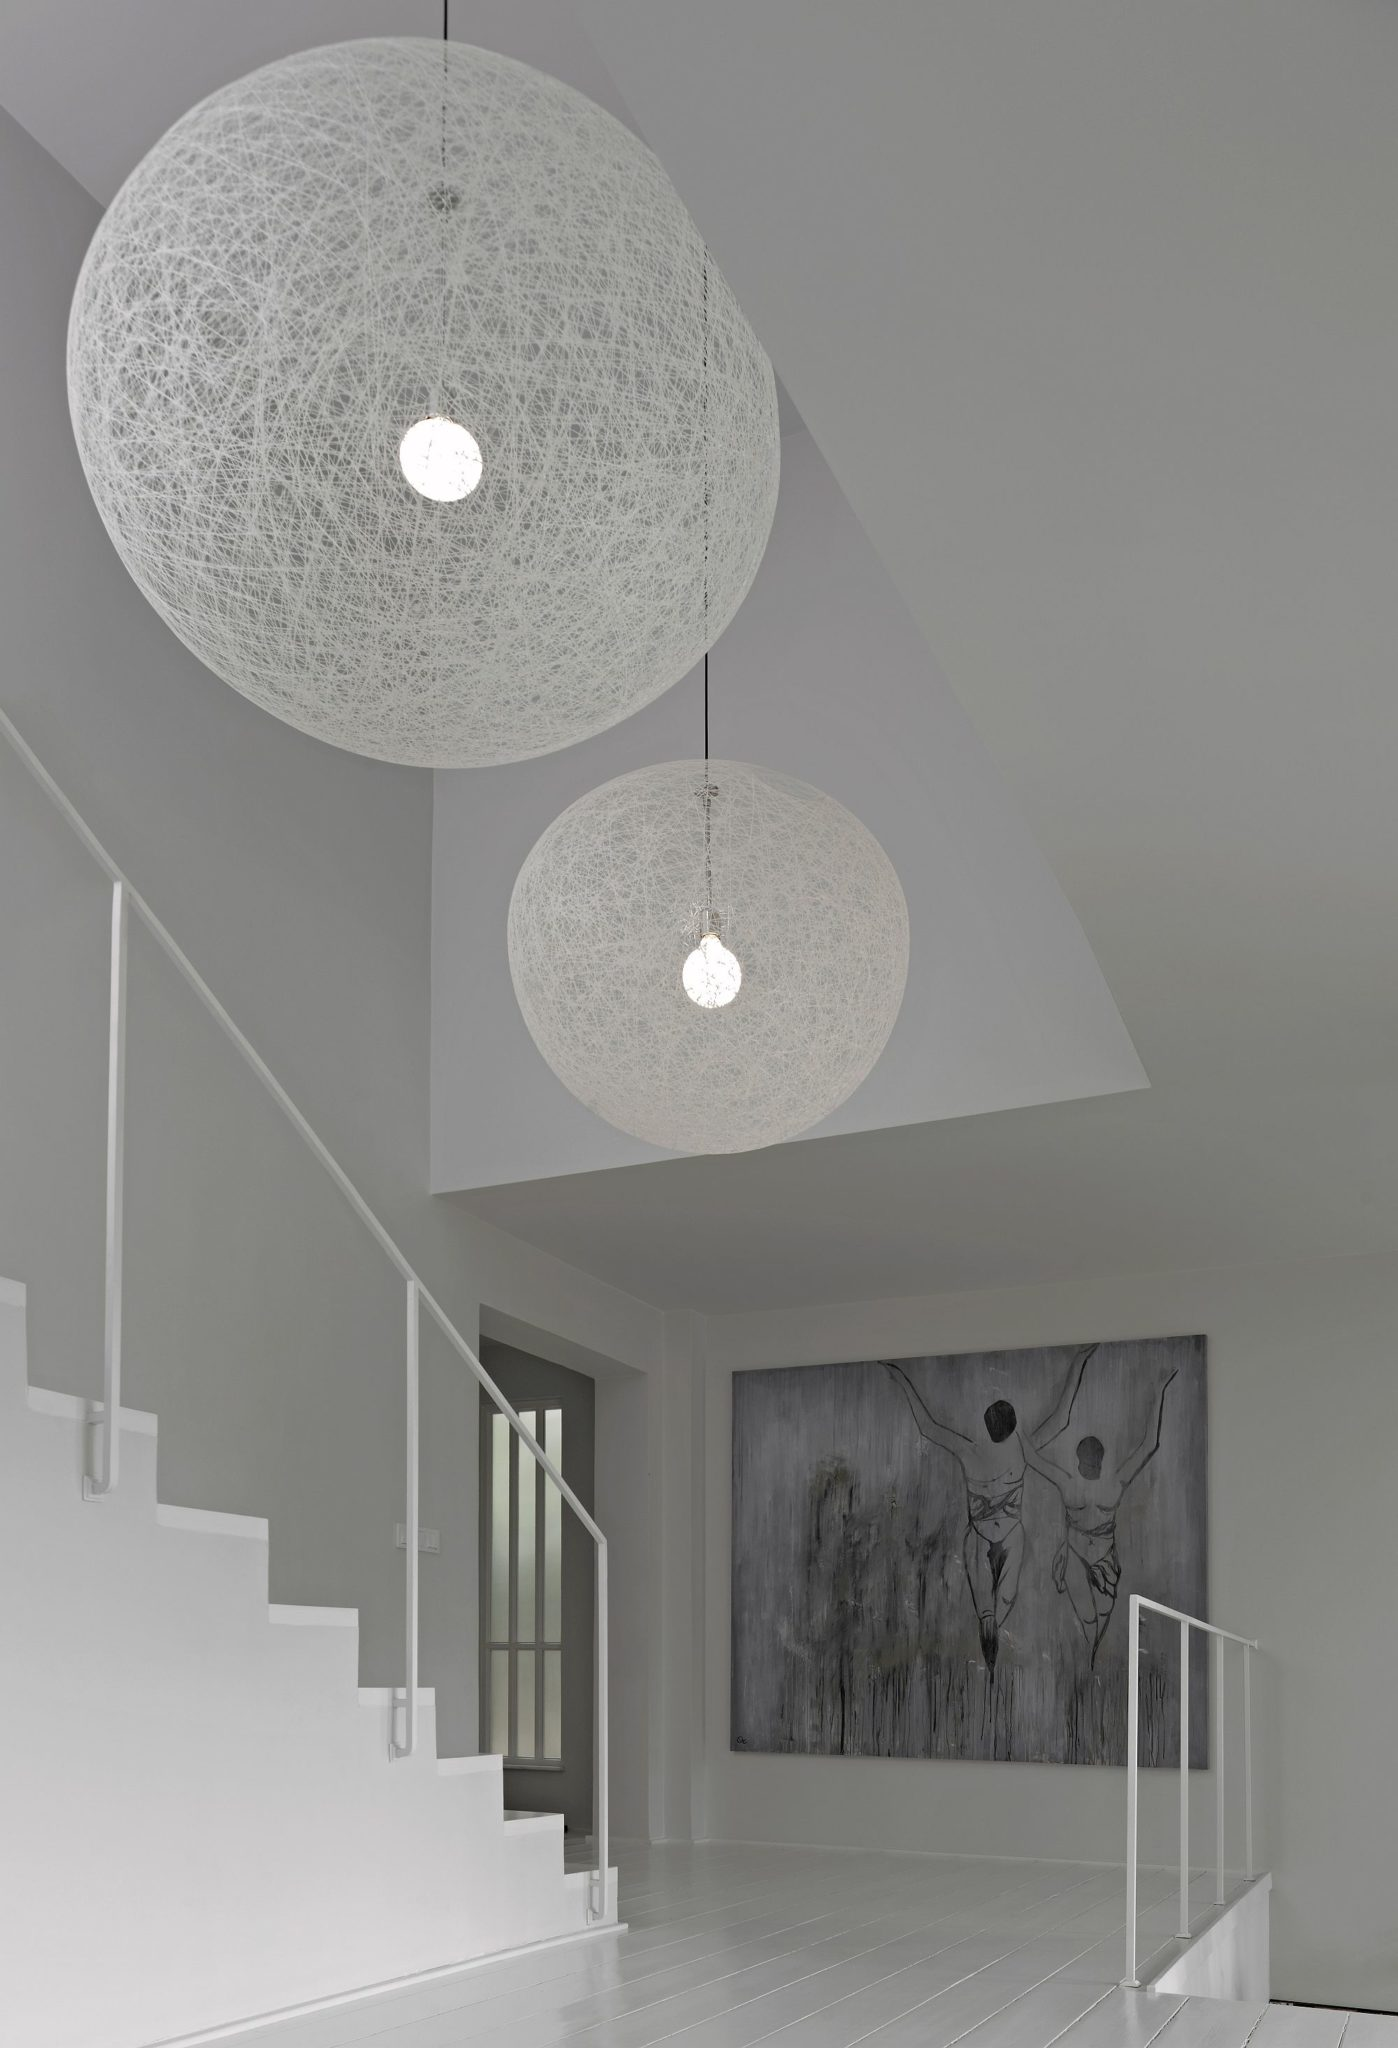 Beautiful Moooi pendants steal the show inside the home even while blending into the backdrop